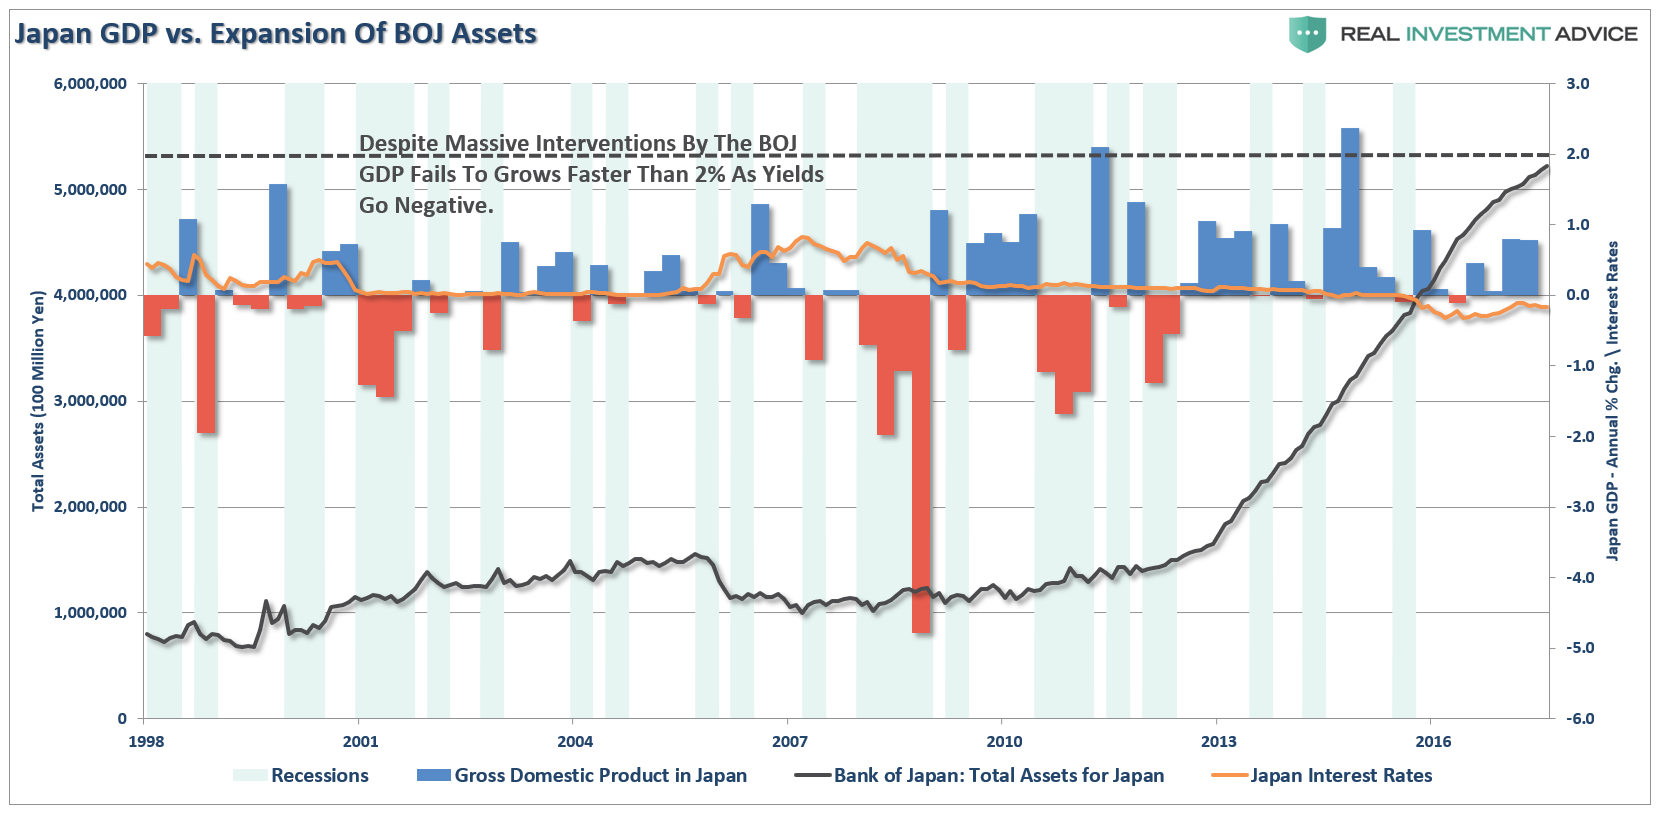 Japan GDP Vs Expansion Of BOJ Assets